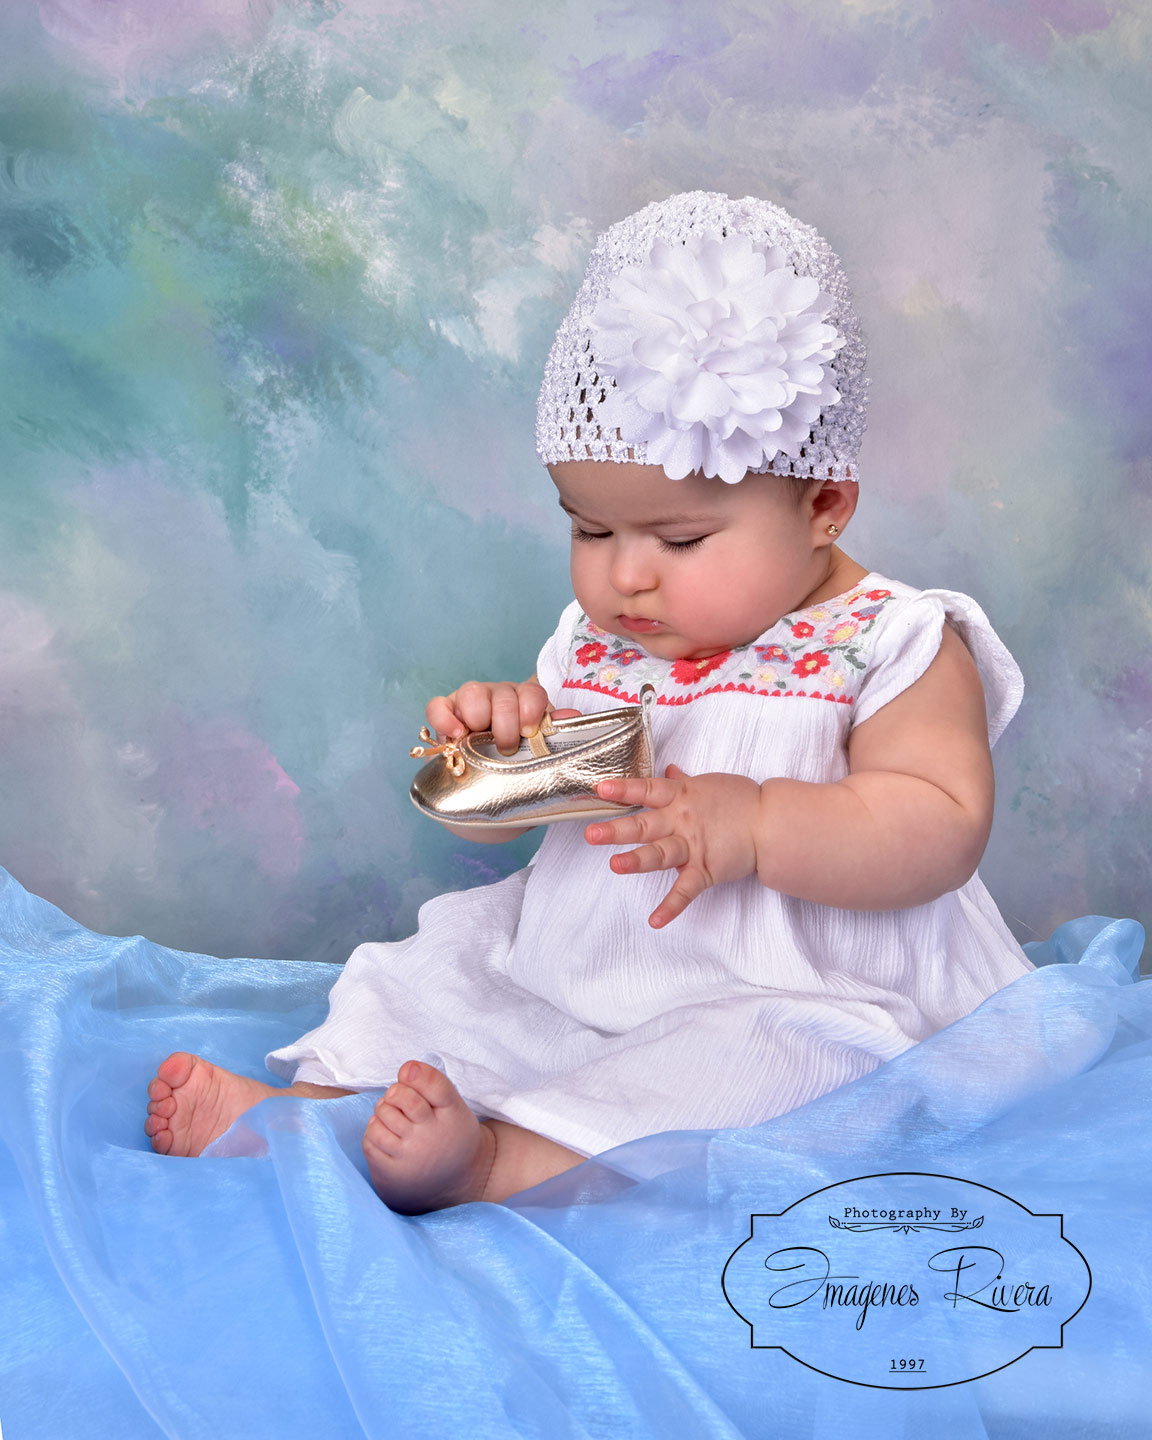 ♥ Nathaly´s 6 months | Children photography Miami Imagenes Rivera ♥